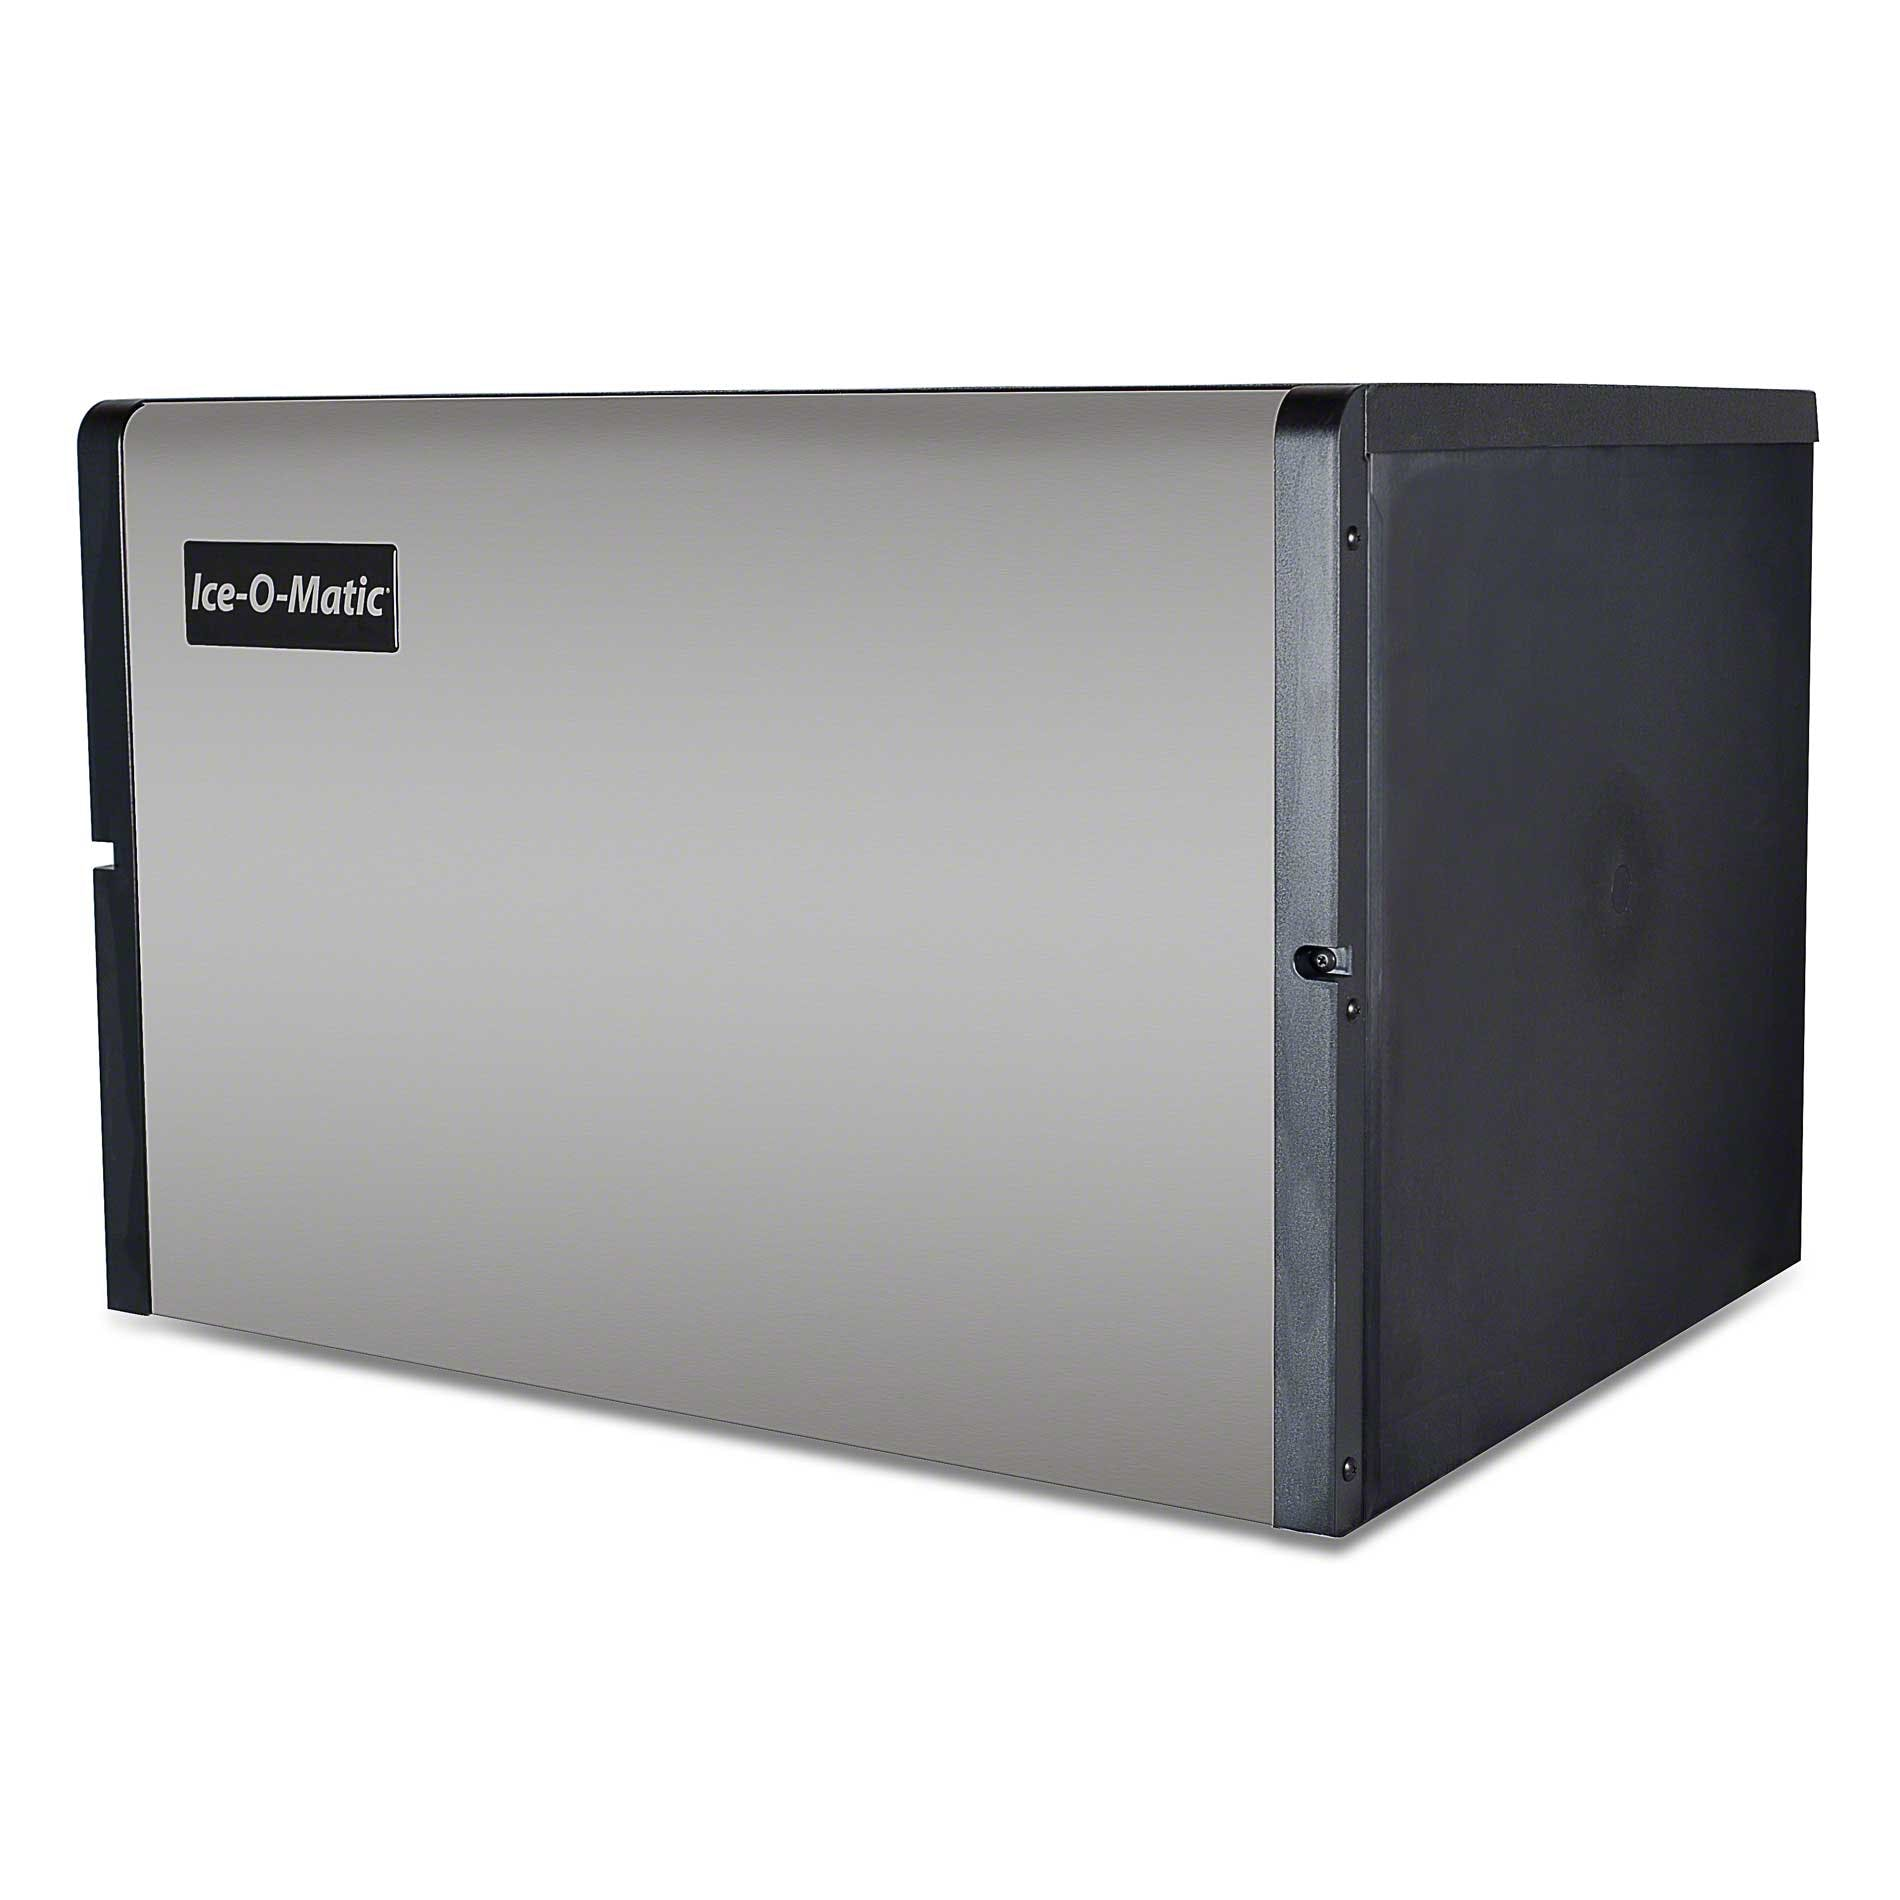 Ice-O-Matic - ICE0606FT 652 lb Full Cube Ice Machine - sold by Food Service Warehouse